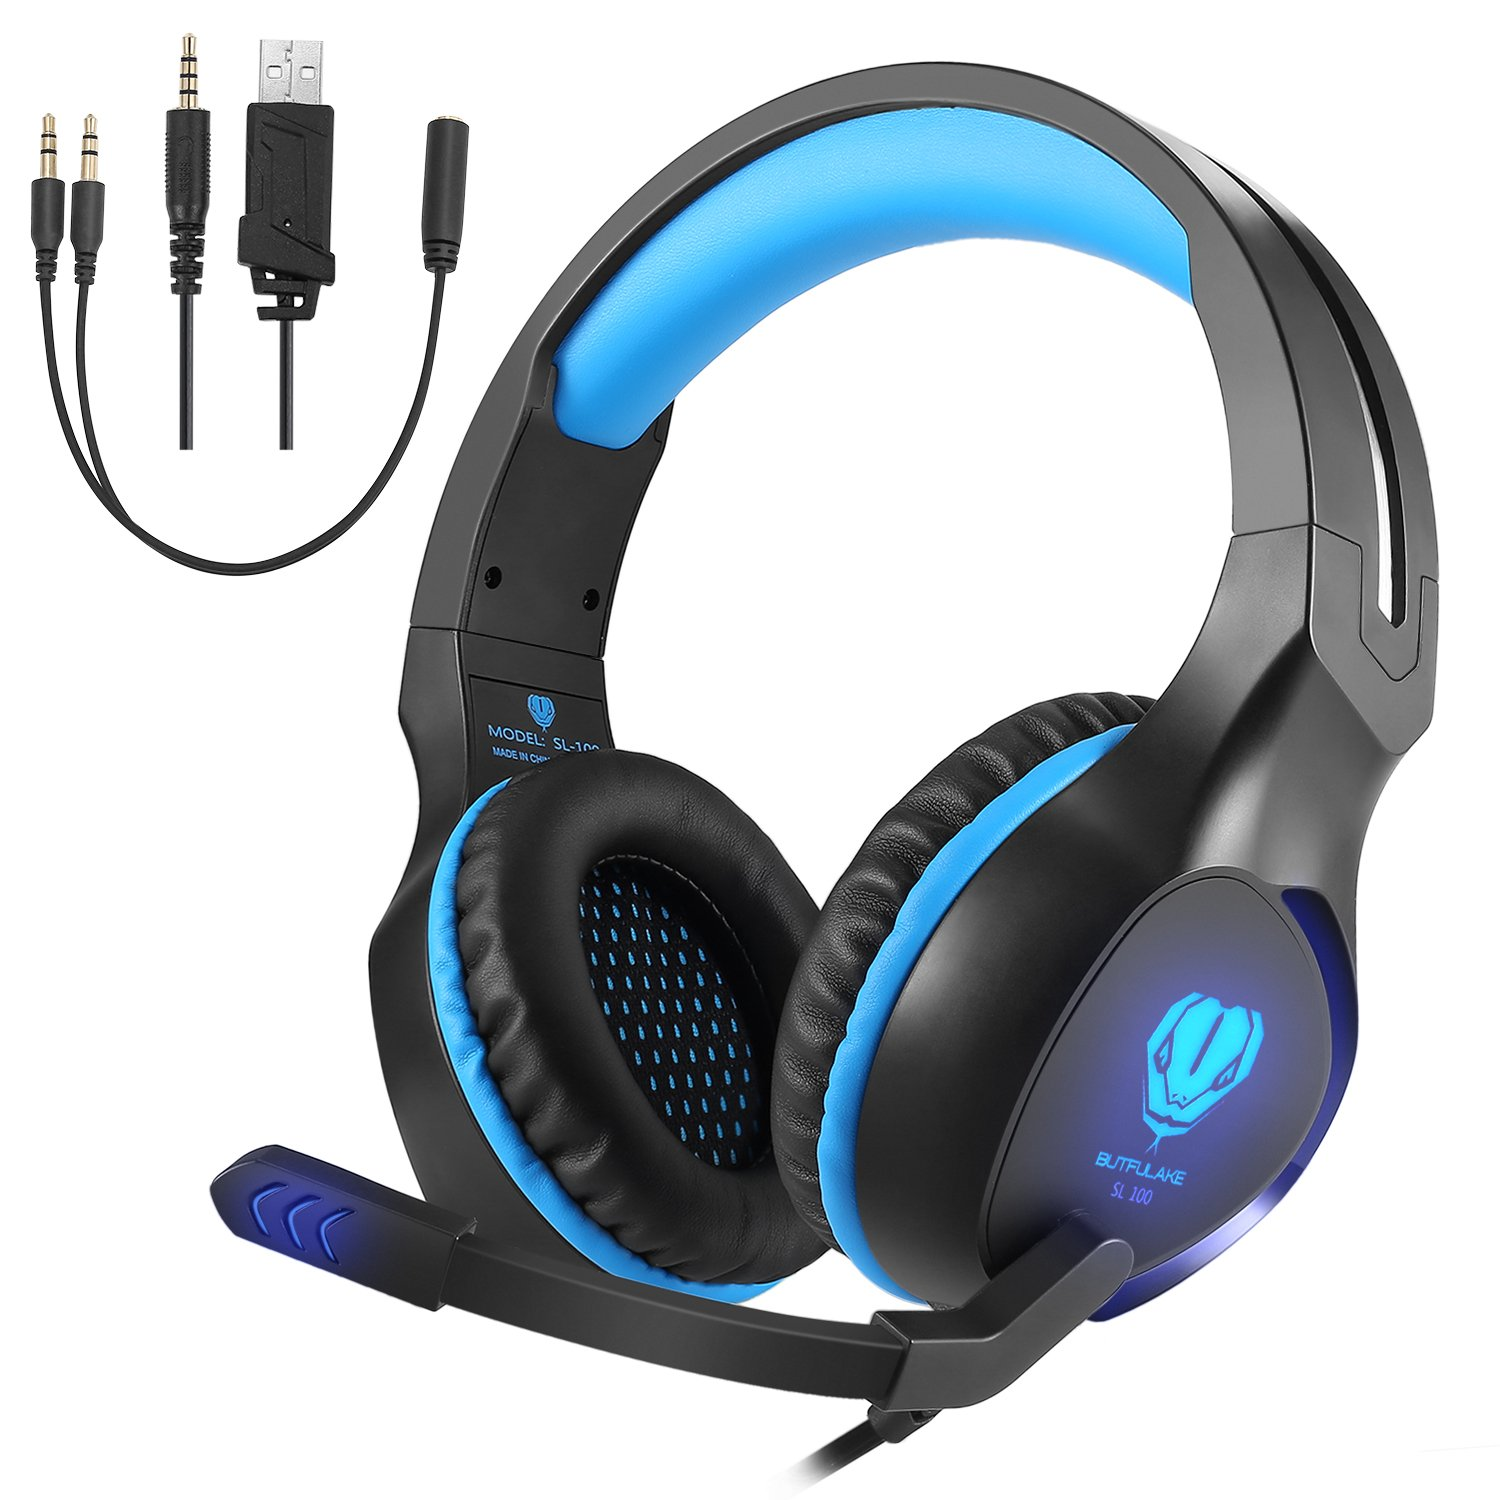 Gaming Headset with Mic, VPRAWLS 3.5mm Wired Over-Ear Bass Surround Stereo Headphone with Noise Cancelling, LED Light, Volume Control for PS4 New Xbox One Laptop Mac PC Computer Games